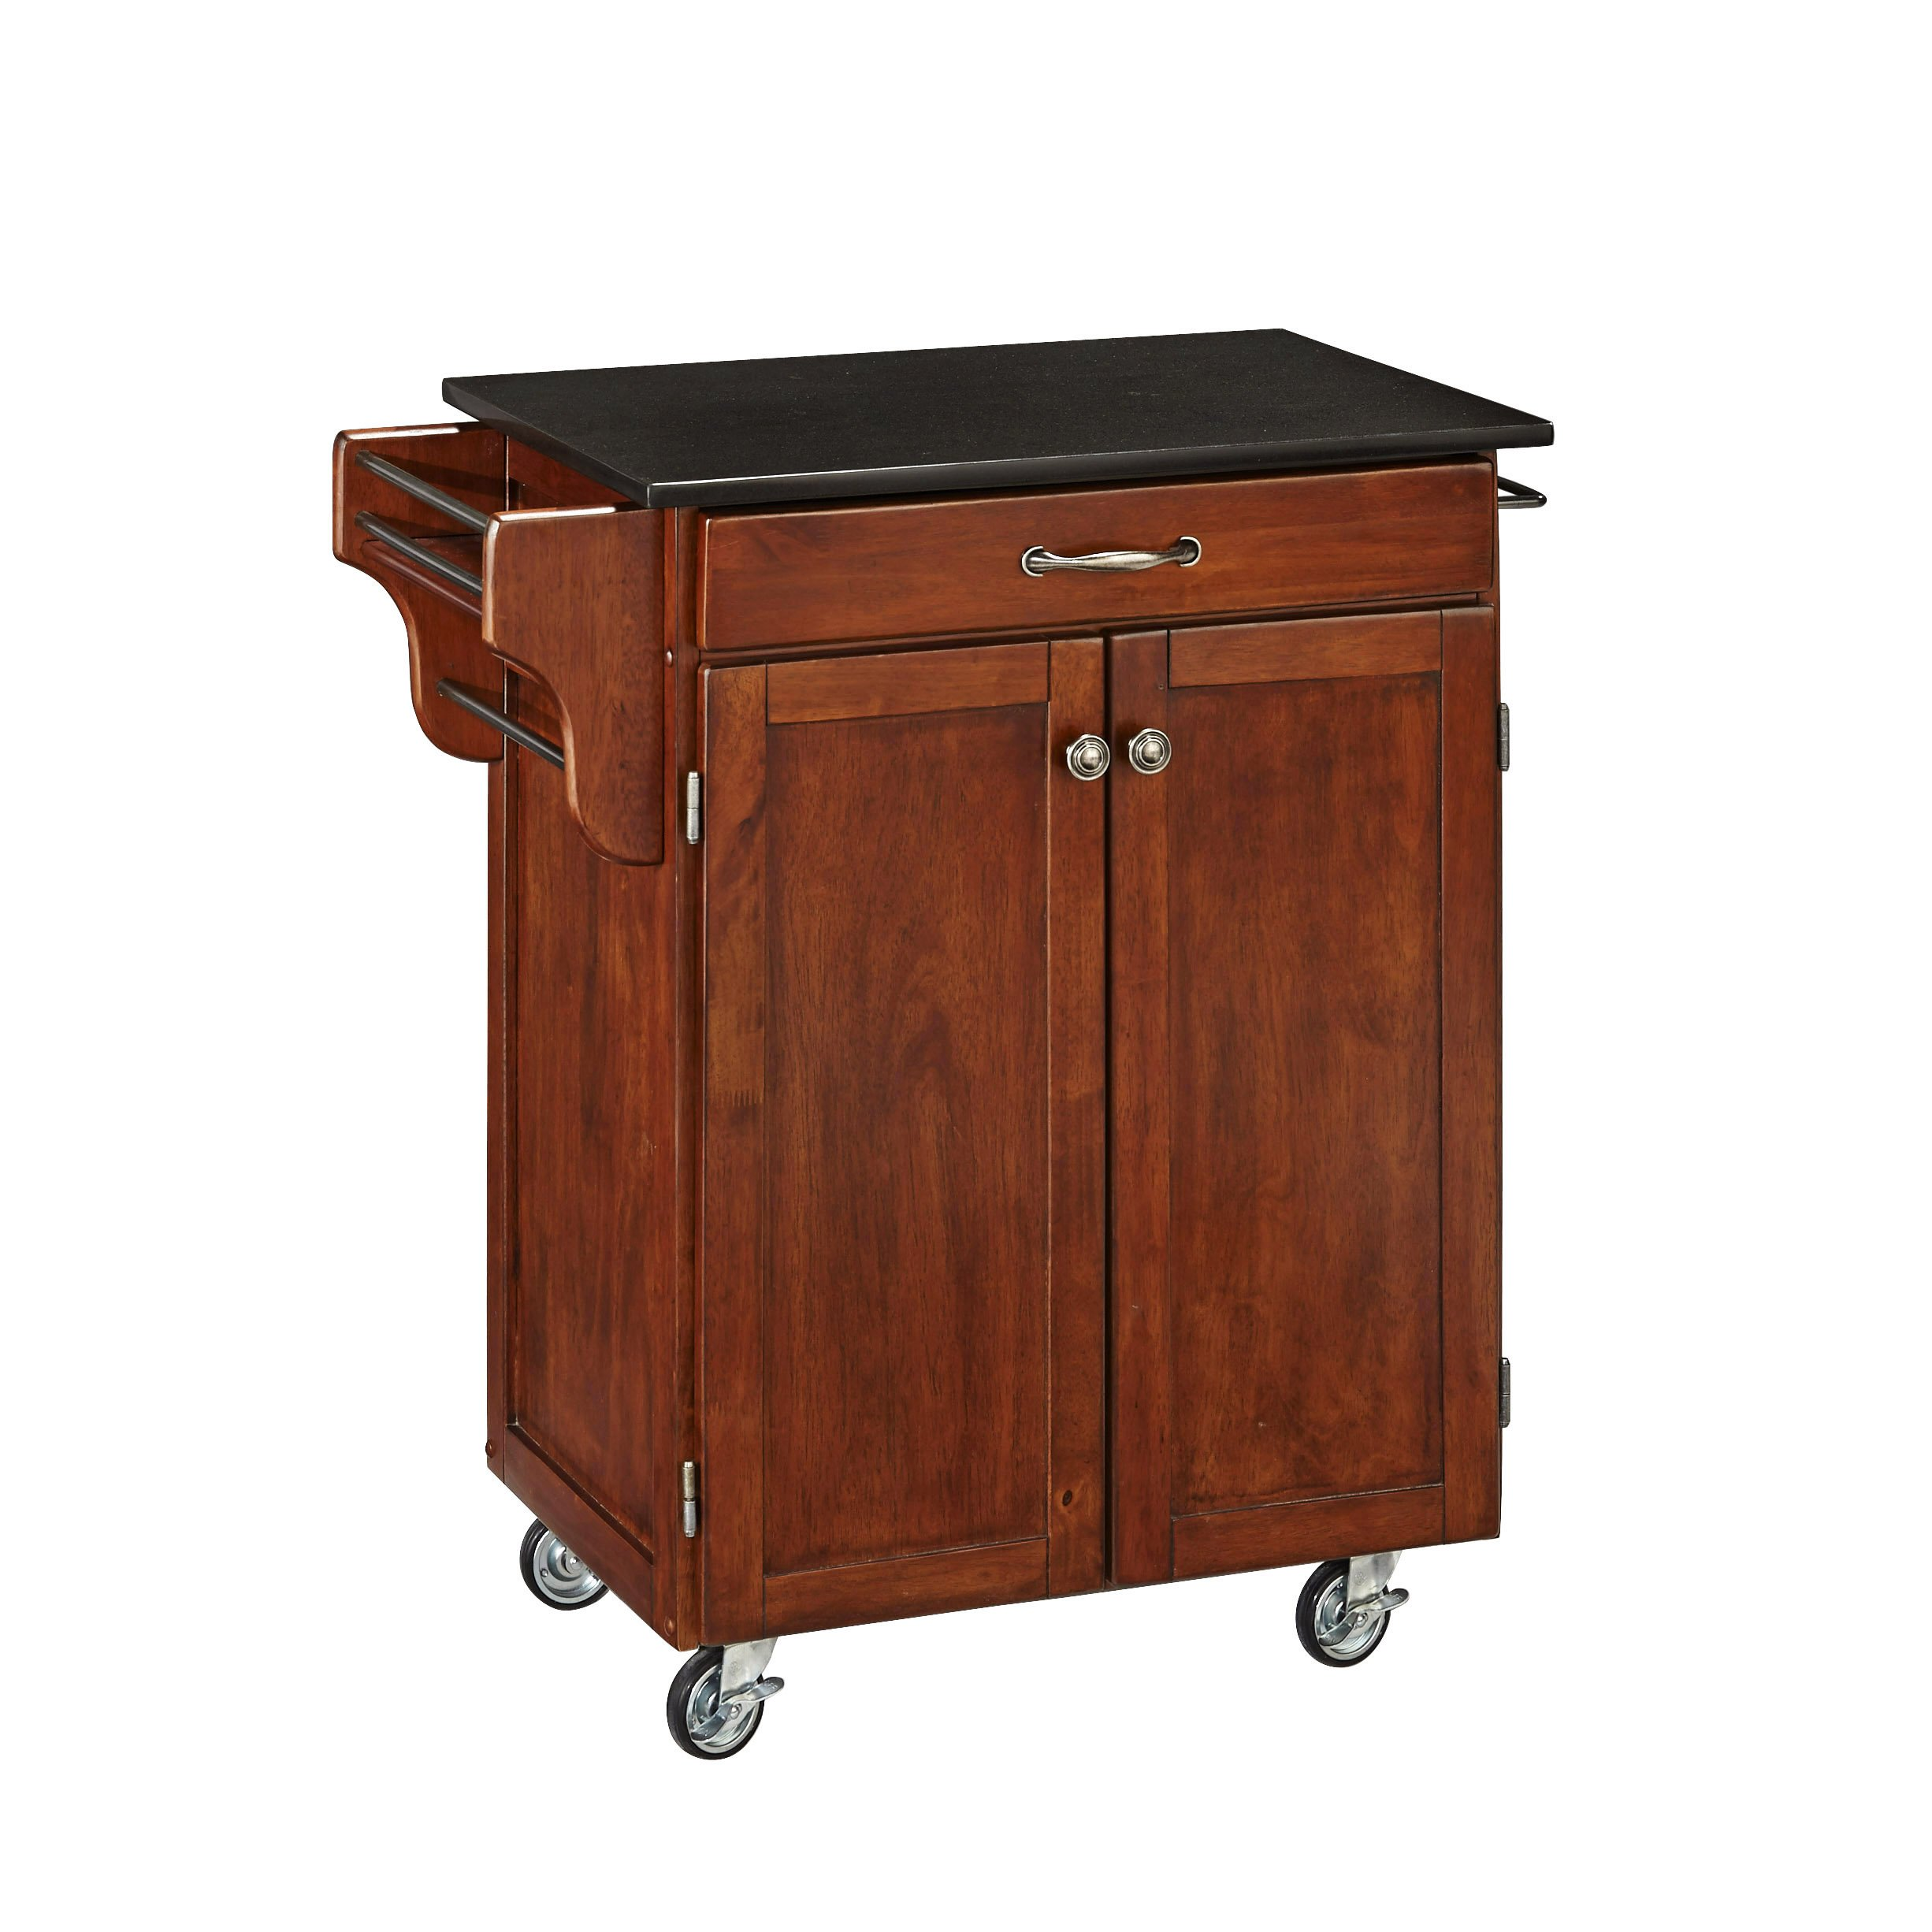 Home Styles 9001-0074 Create-a-Cart 9001 Series Cuisine Cart with Black Granite Top, Cherry, 32-1/2-Inch by Home Styles (Image #1)